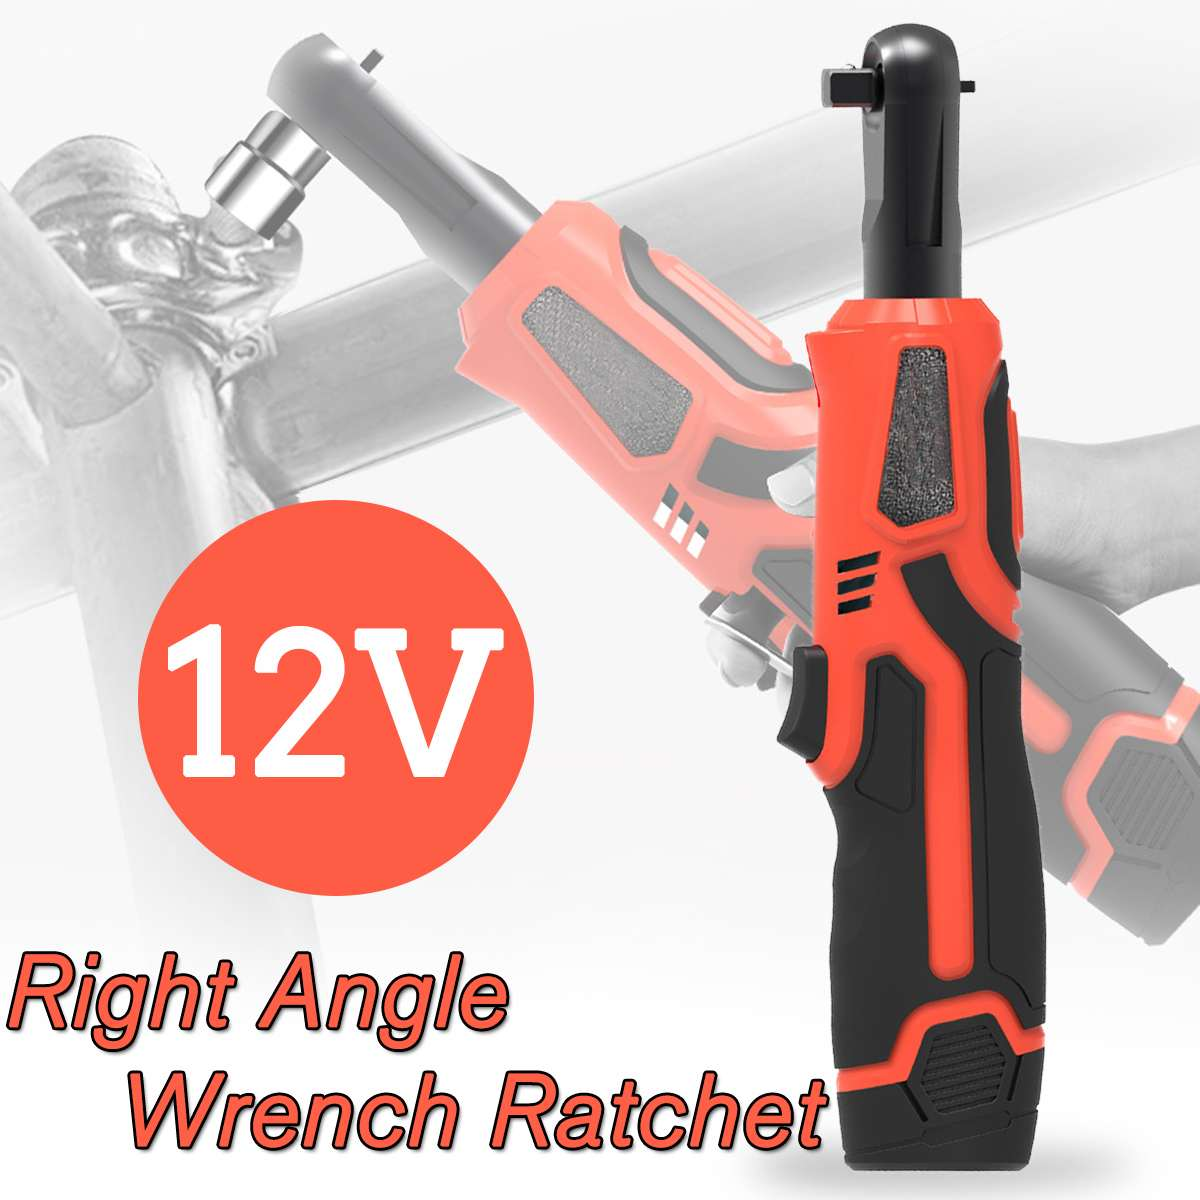 12V Cordless Electric Wrench 3/8 Inch Electric Ratchet Wrench Lithium Battery Right Angle Wrench with Led Light Car Repair Tools12V Cordless Electric Wrench 3/8 Inch Electric Ratchet Wrench Lithium Battery Right Angle Wrench with Led Light Car Repair Tools